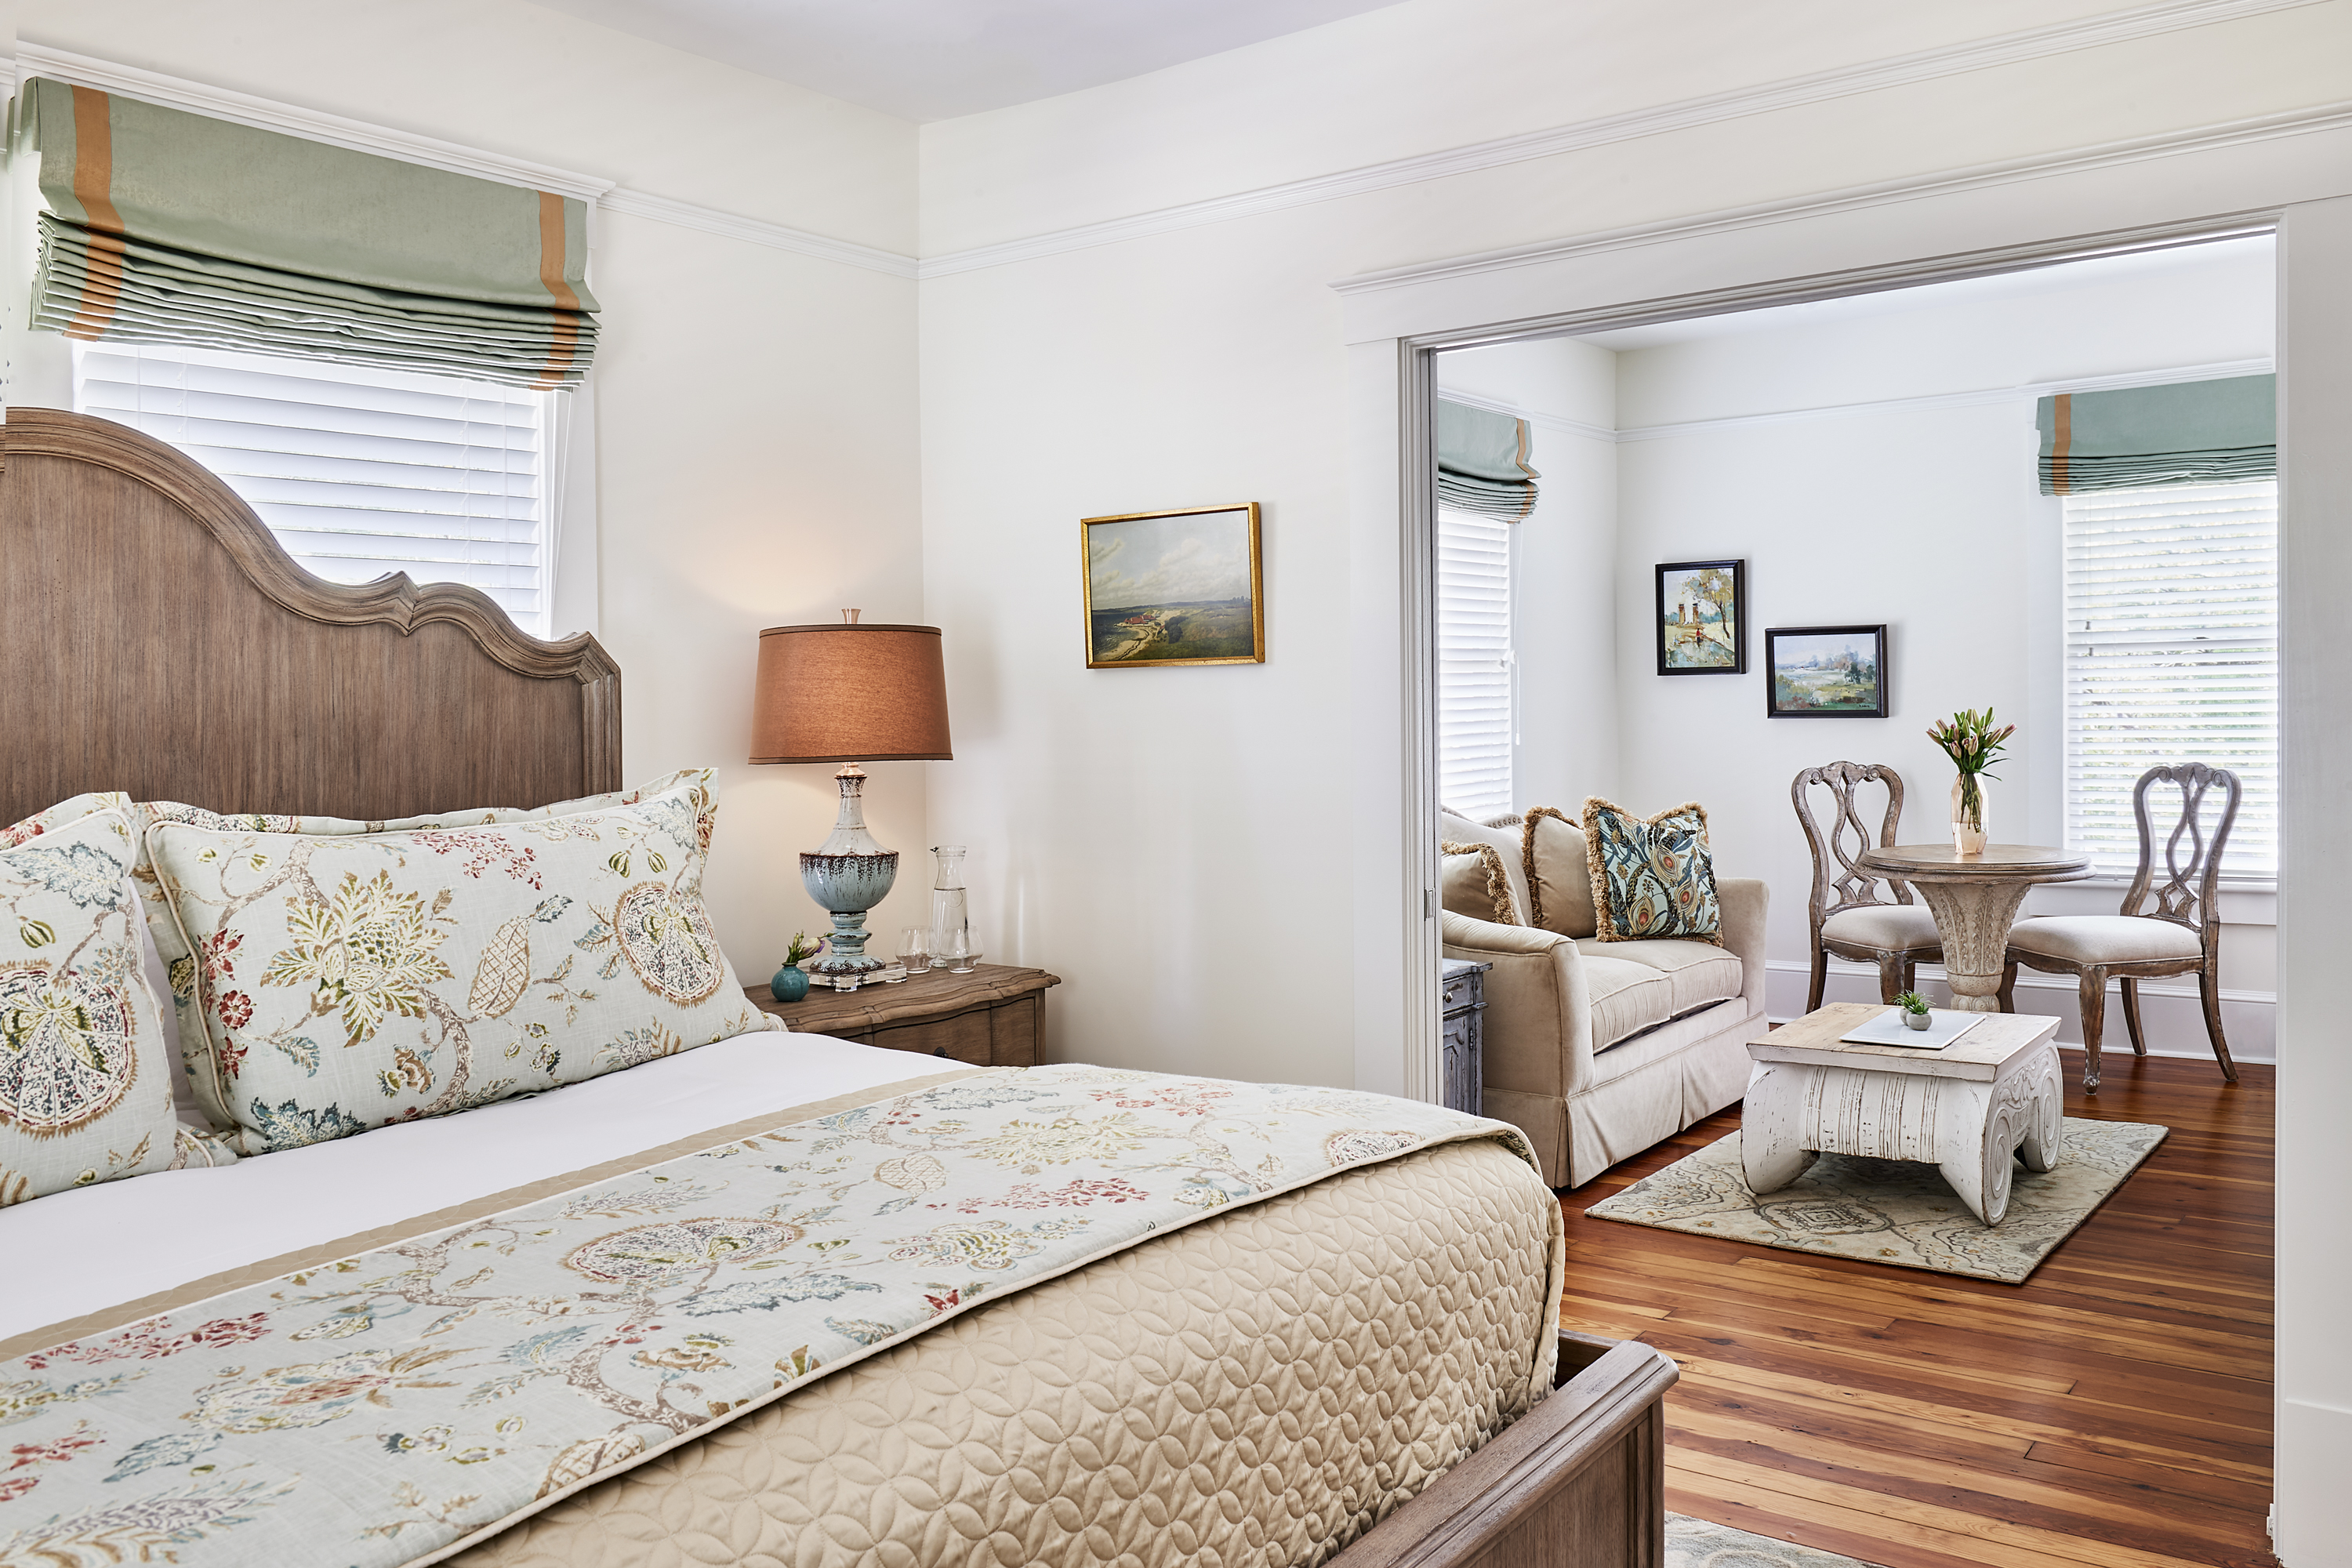 Stay in a room inside one of the property's historic homes that date back to 1790.